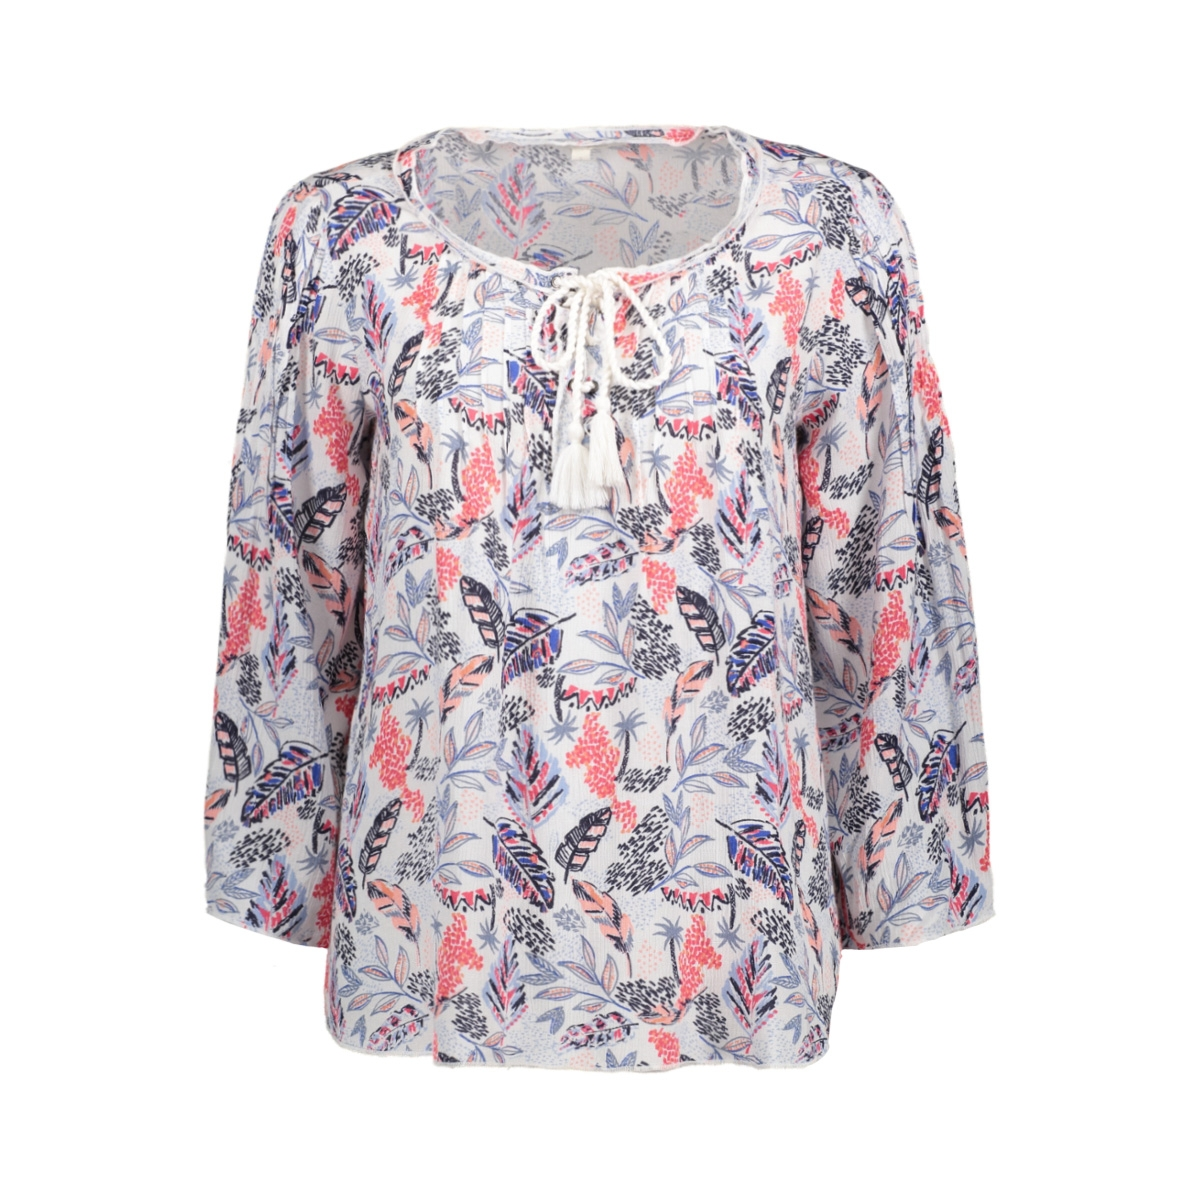 2033470.01.71 tom tailor blouse 8005